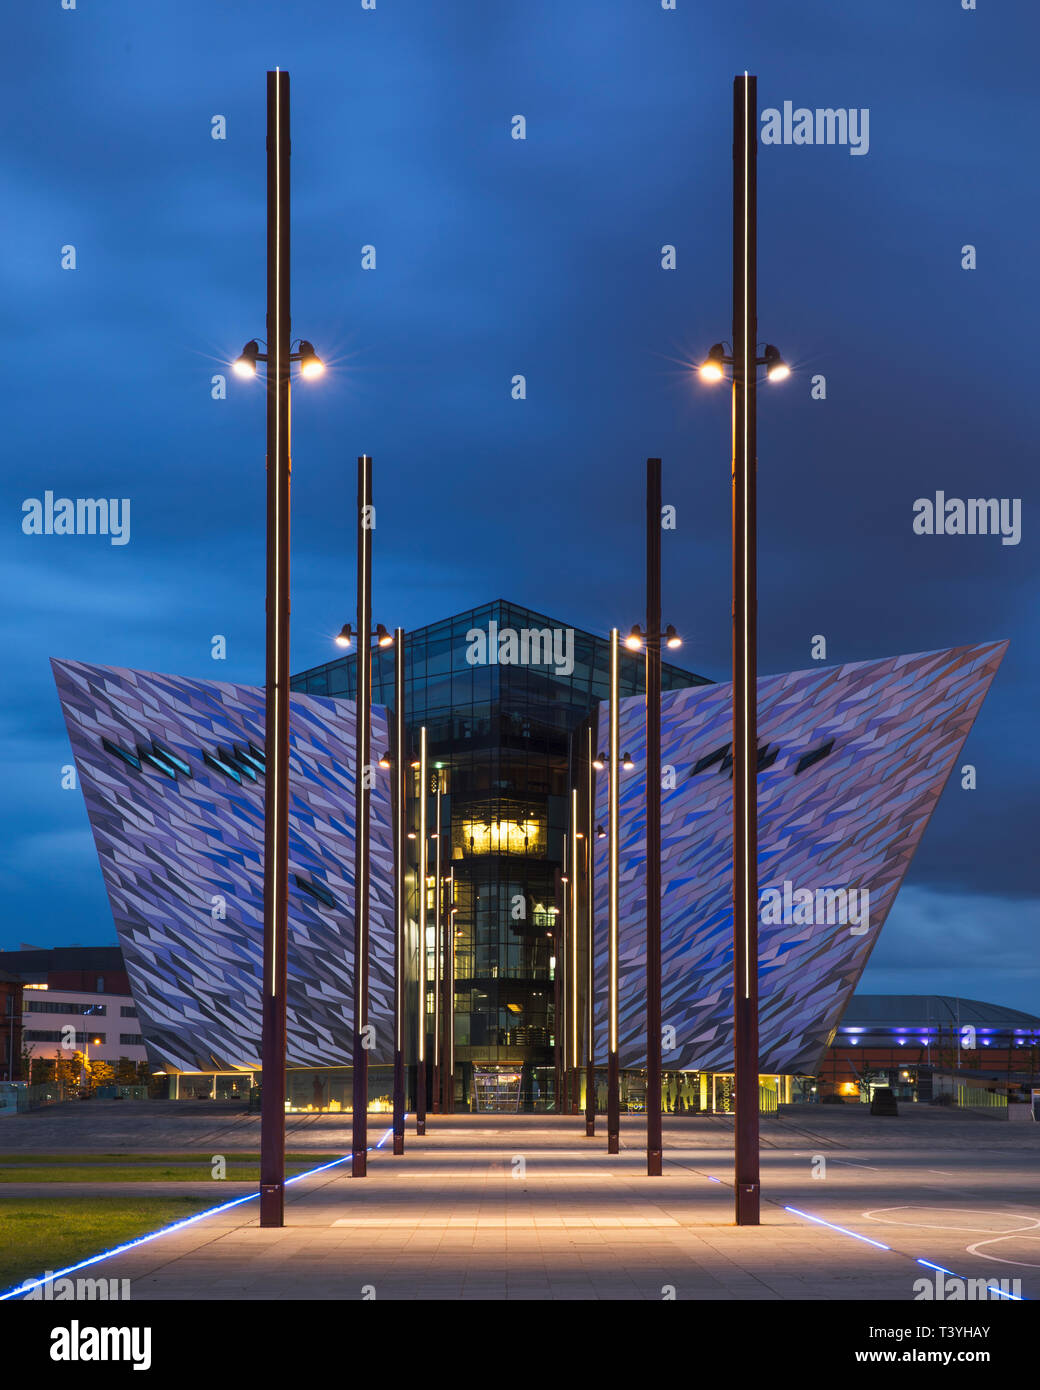 Northern Ireland, Belfast, Titanic Quarter. Titanic Belfast, an aluminium clad museum resembling the hull of a ship. Stock Photo